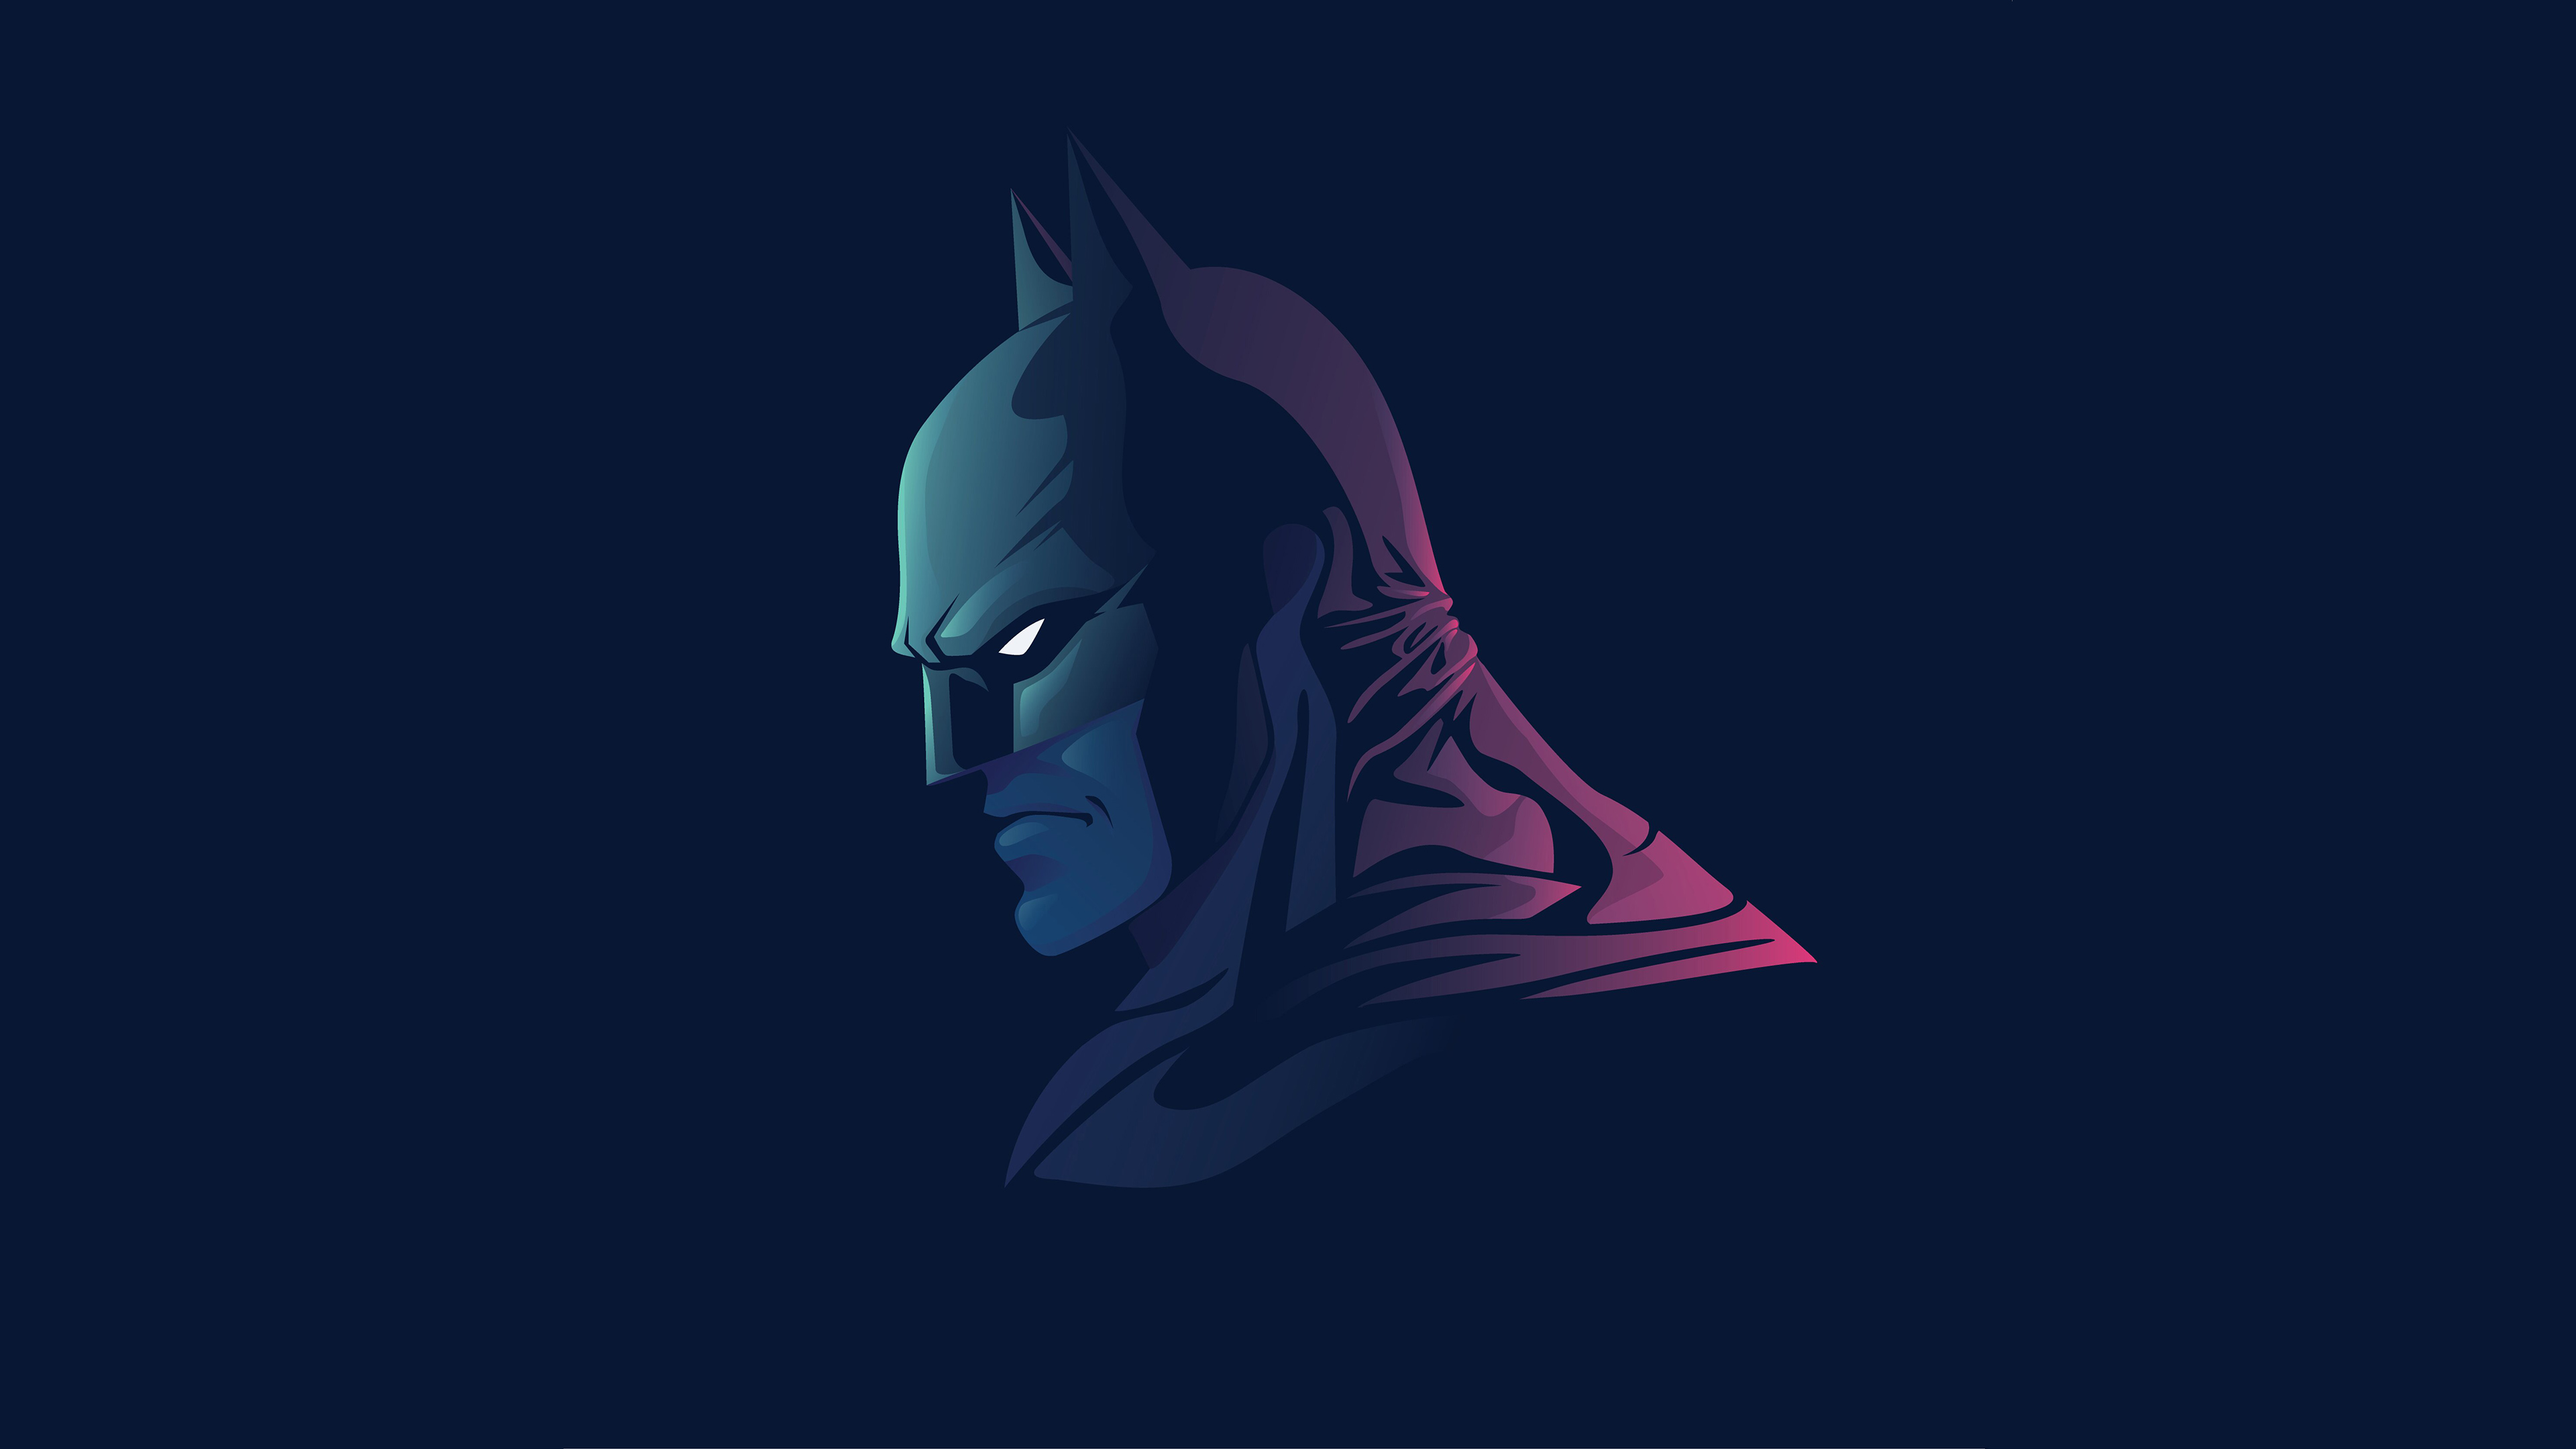 Wallpaper 4k Batman The Dark Knight Minimal 4k 4k Wallpapers